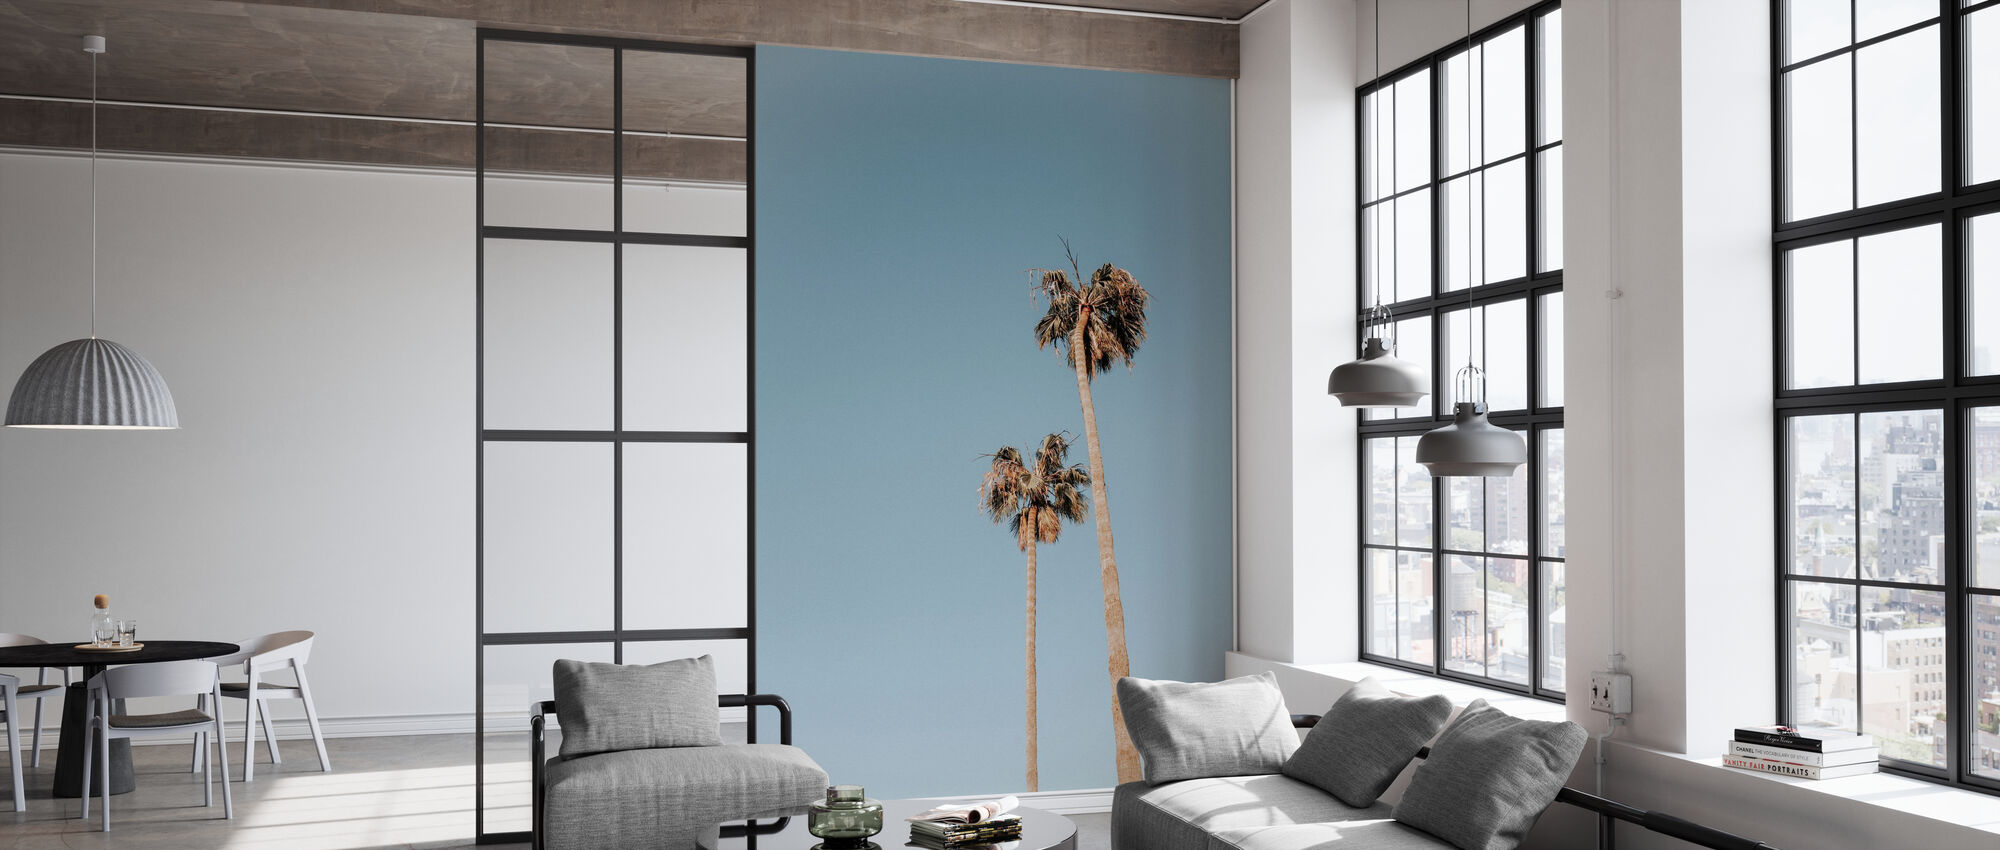 California Dreamin - Wallpaper - Office